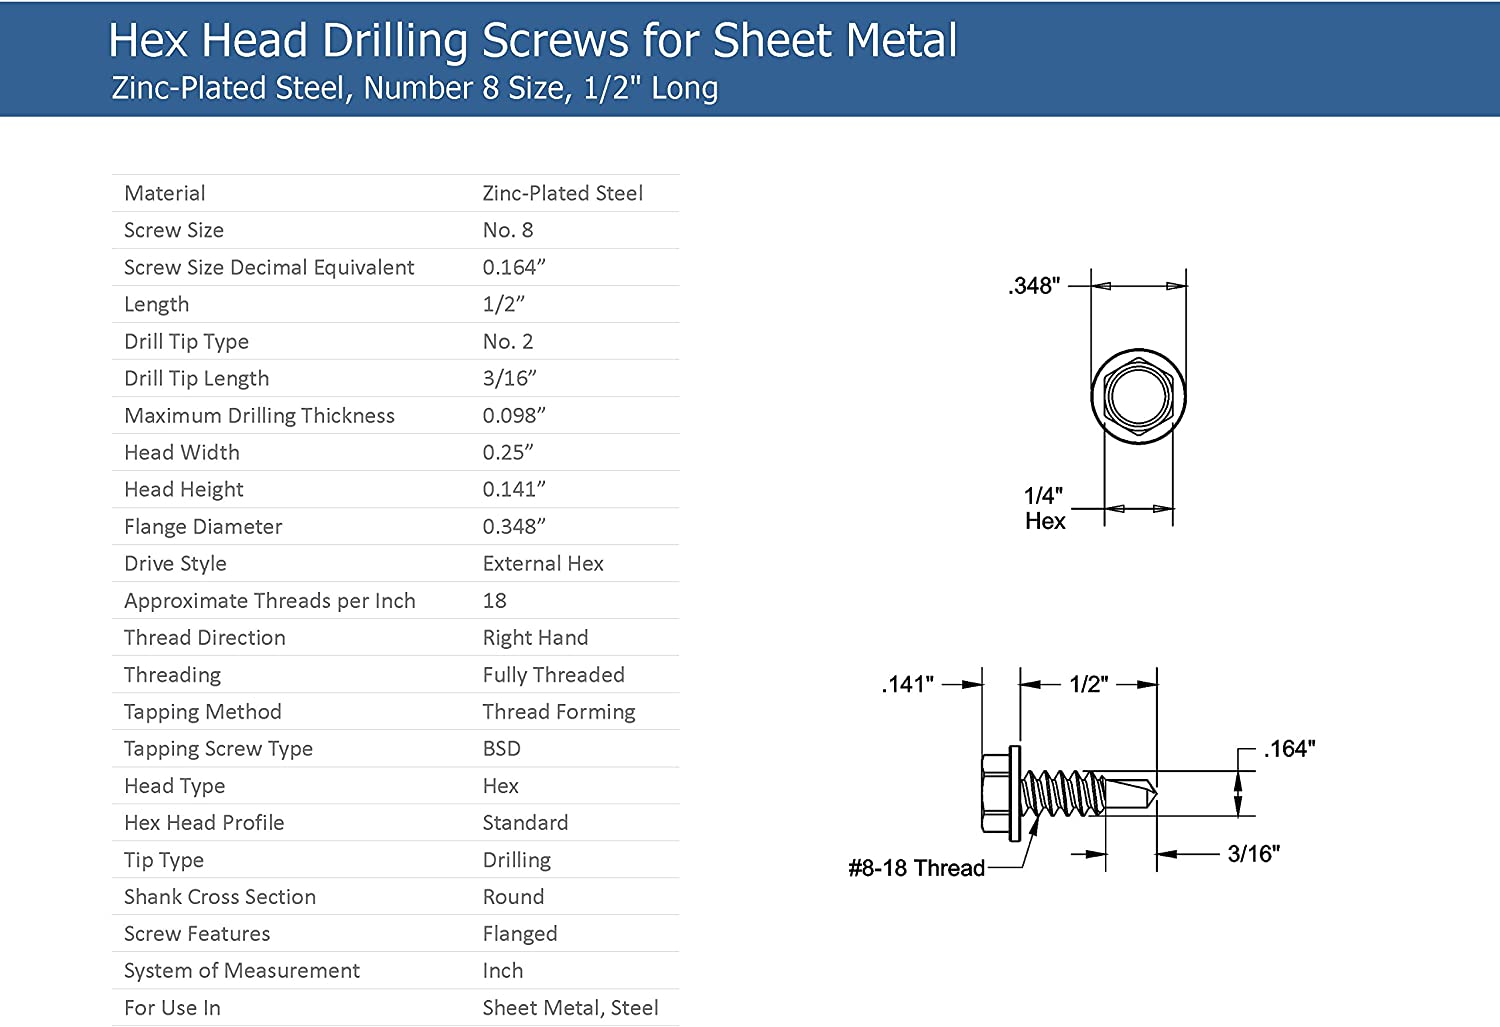 #6-20 Thread Size 3//8 Length #2 Drill Point Steel Self-Drilling Screw Pack of 10000 Pack of 10000 Slotted Drive Small Parts 0606KSW Hex Washer Head 3//8 Length Zinc Plated Finish